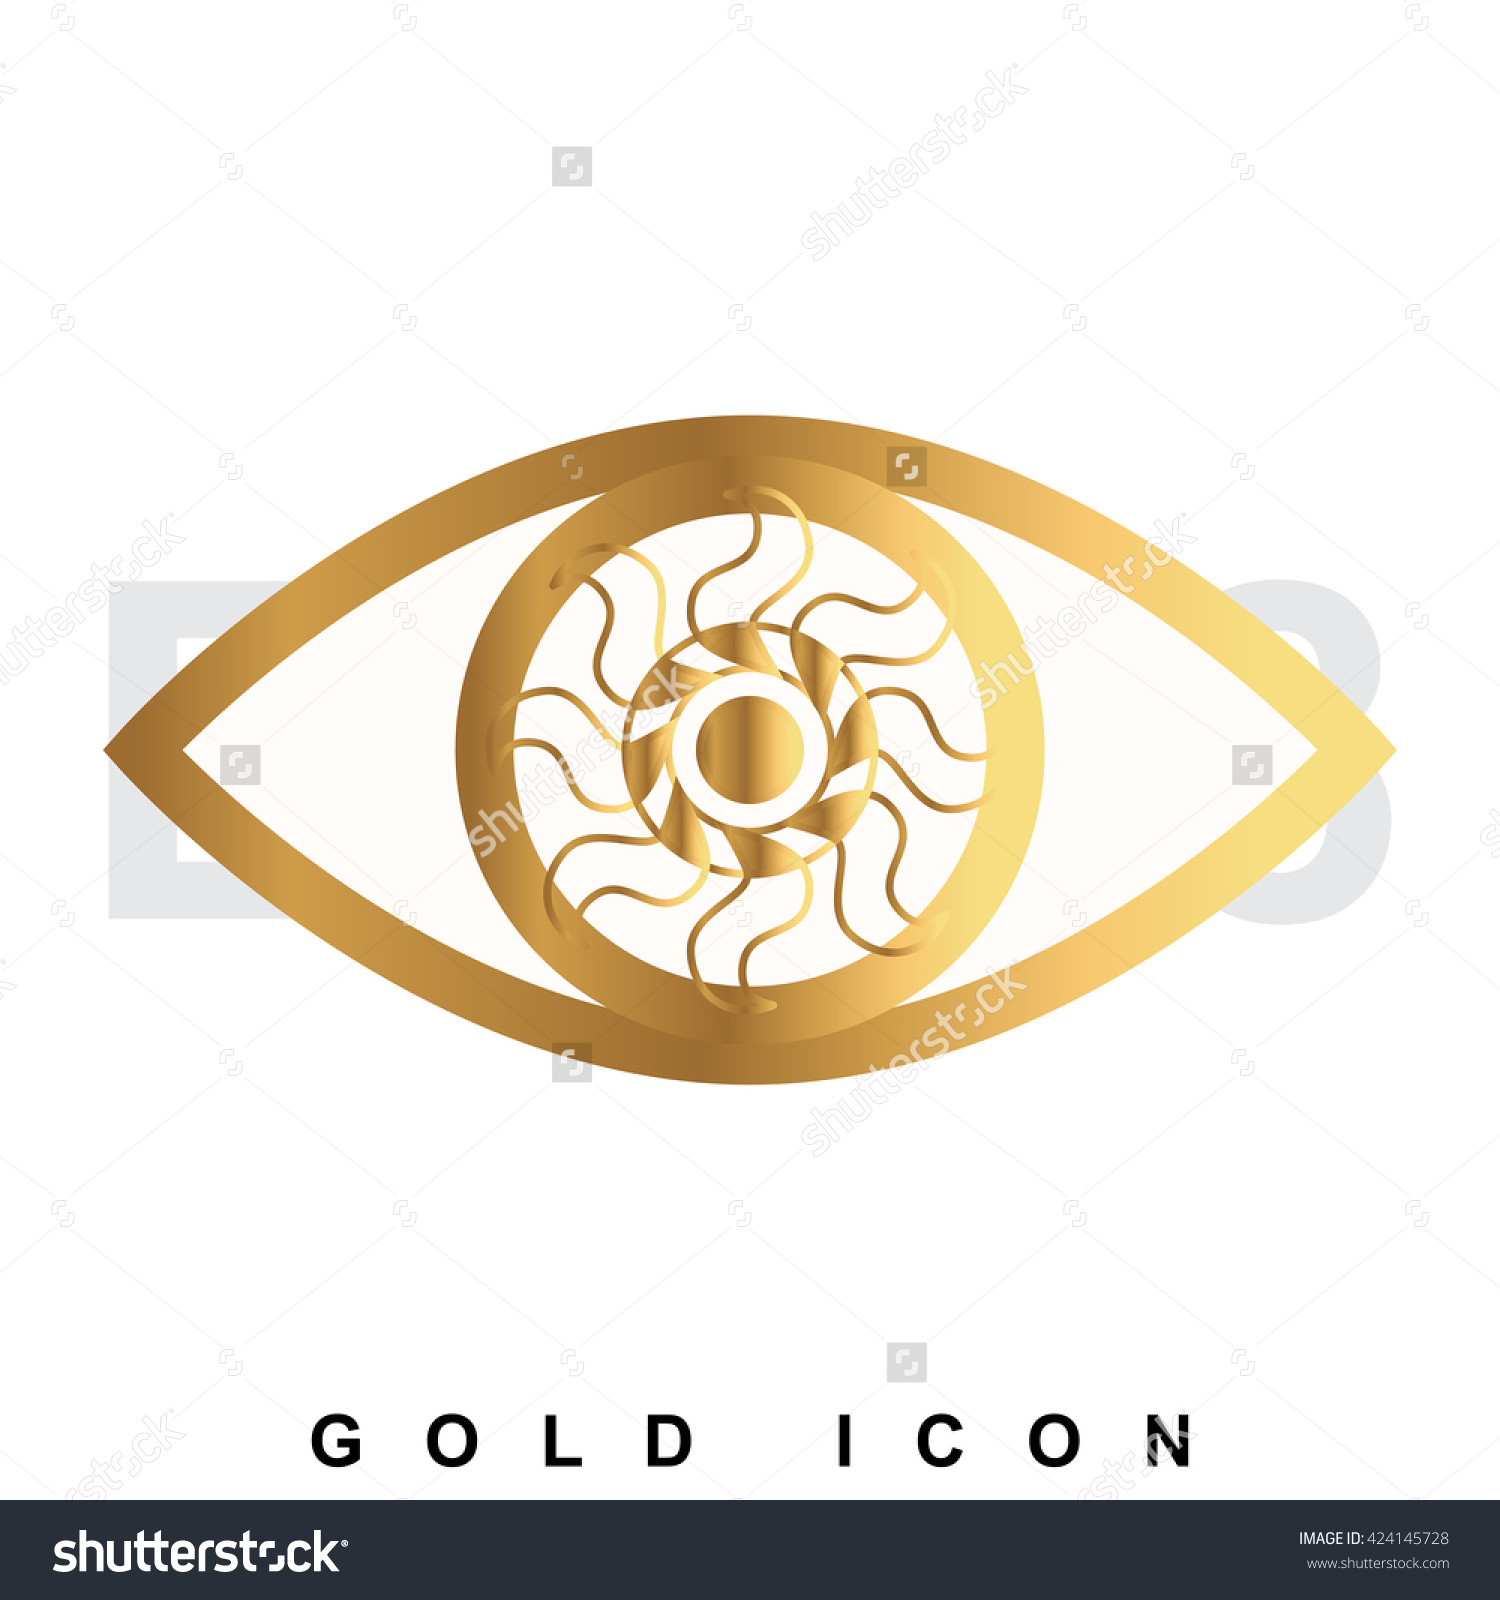 Golden Eye Premium Icon Graphic Web Stock Vector 424145728.